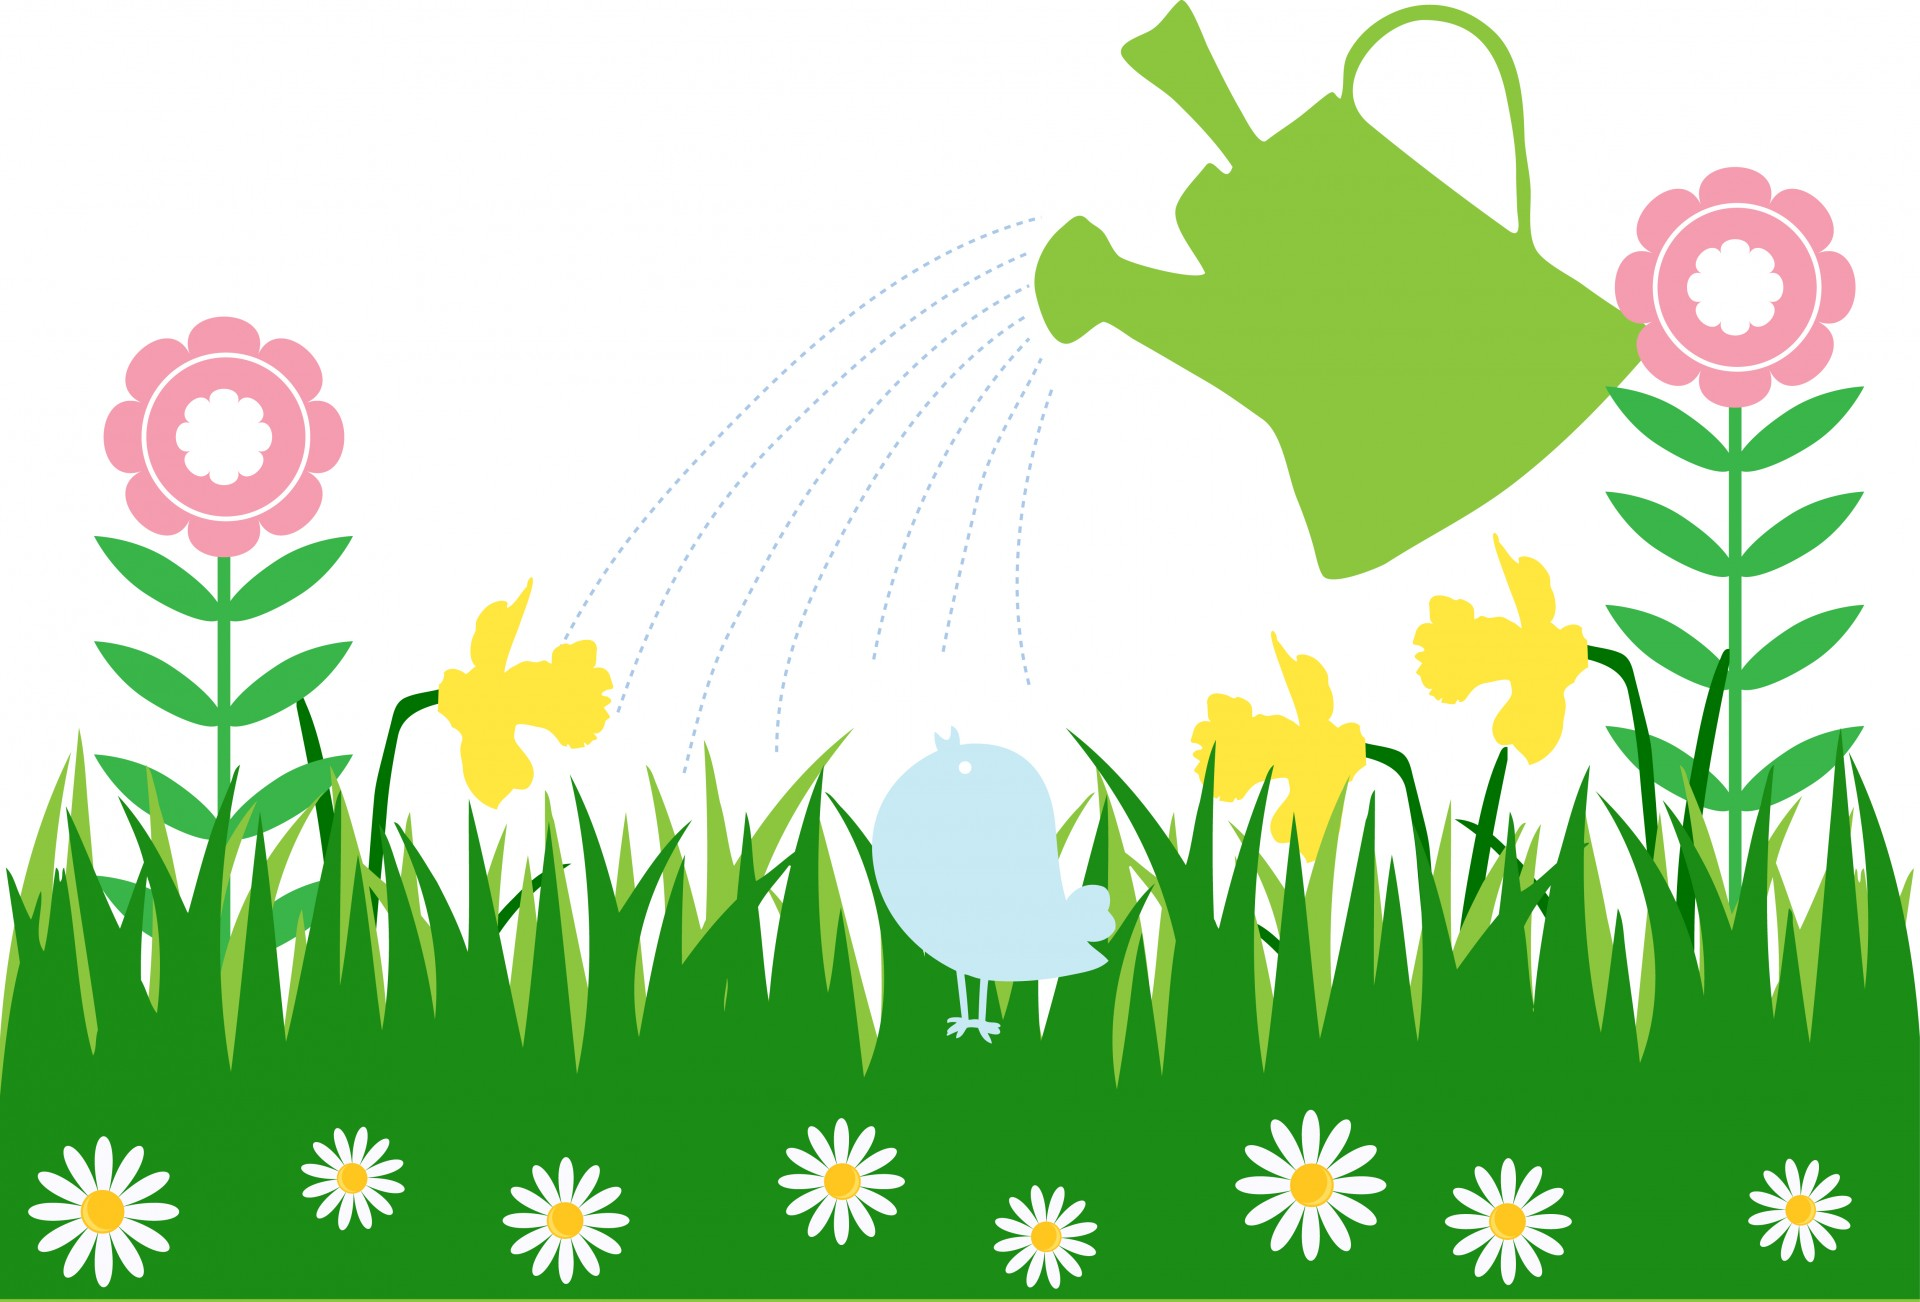 Pictures Of Flowers Clipart At Getdrawings Com Free For Personal